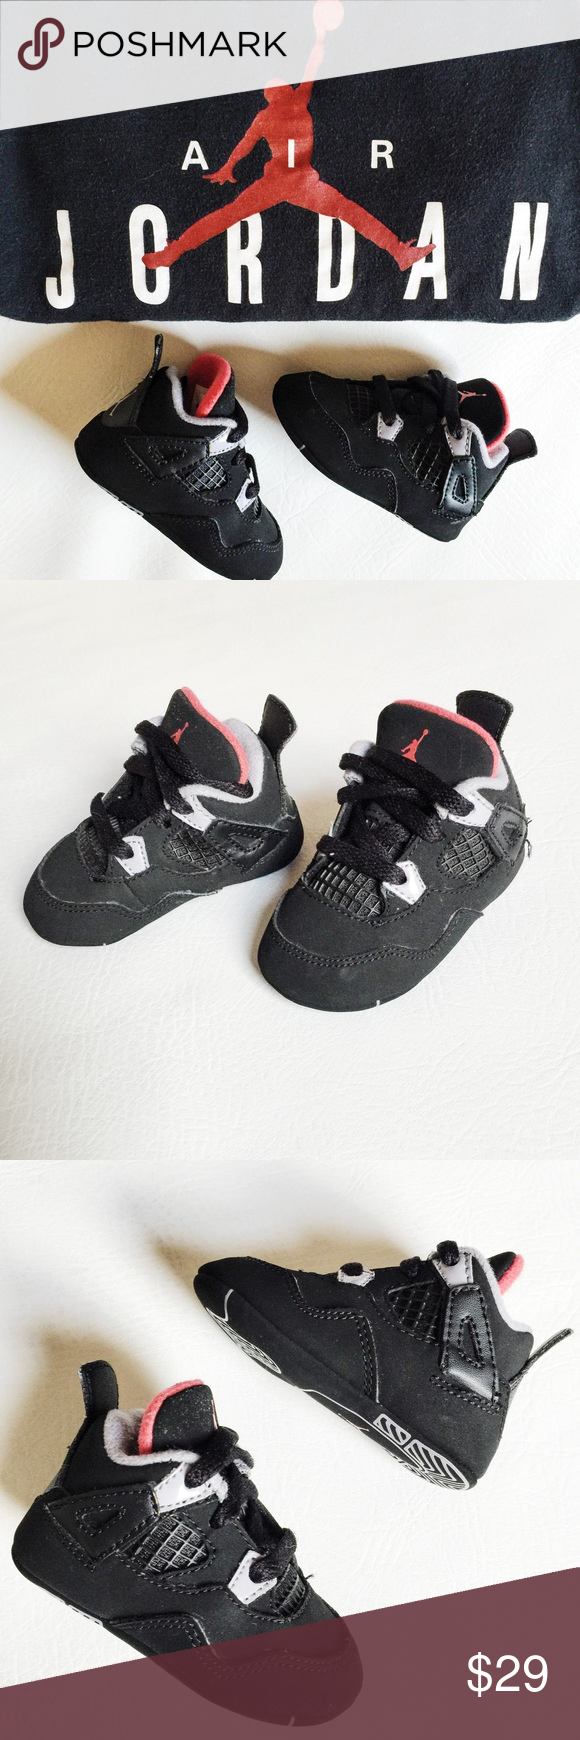 21a8b8657036f0 SALE ▫ Nike Air Jordan Retro 4 Infant Shoes Nike Air Jordan Retro 4 Infant  Shoes in black featuring soft sole. Pre-loved but in like new condition